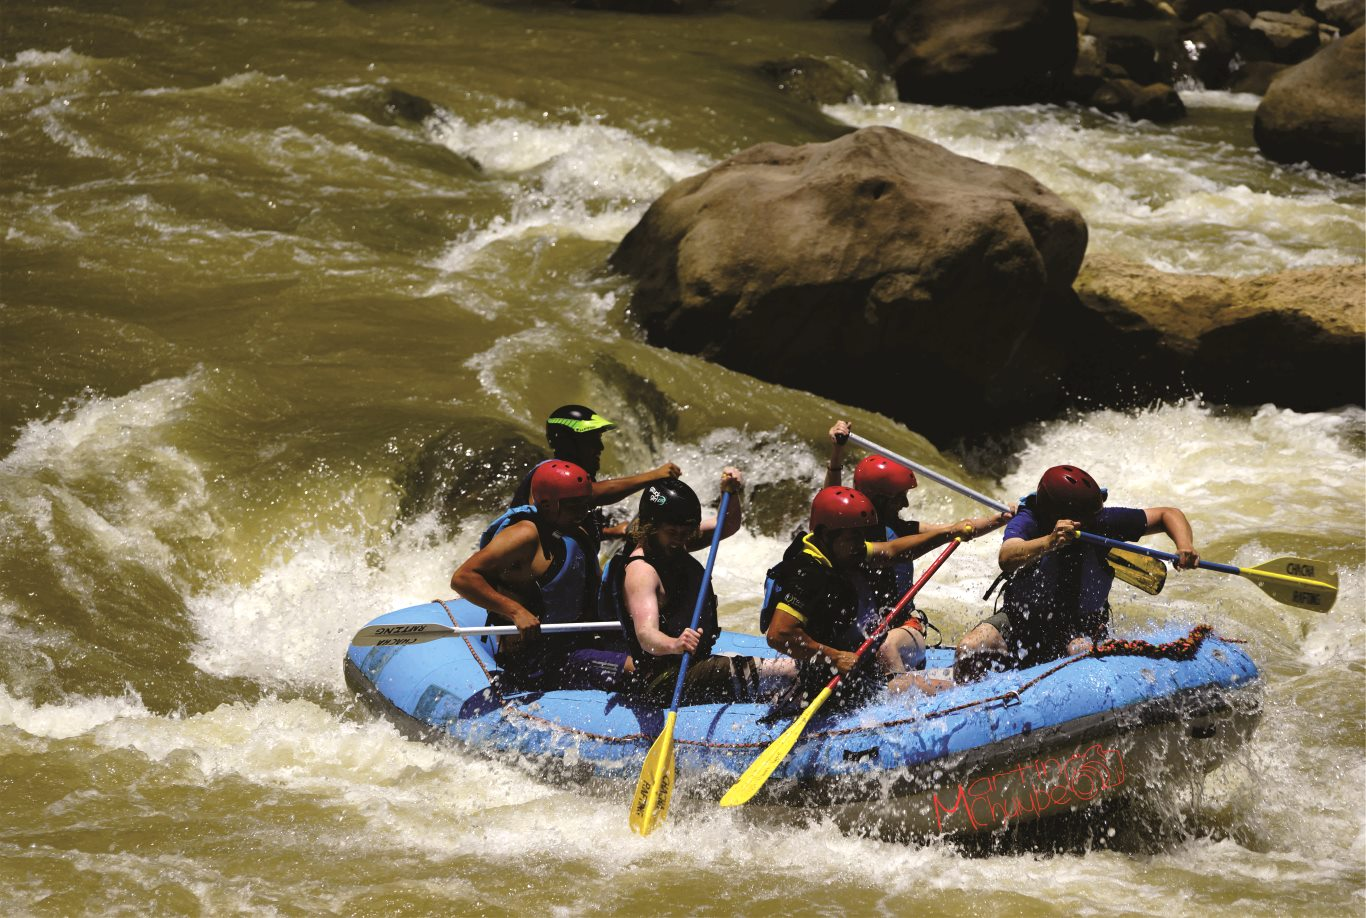 River rafting in Chachapoyas